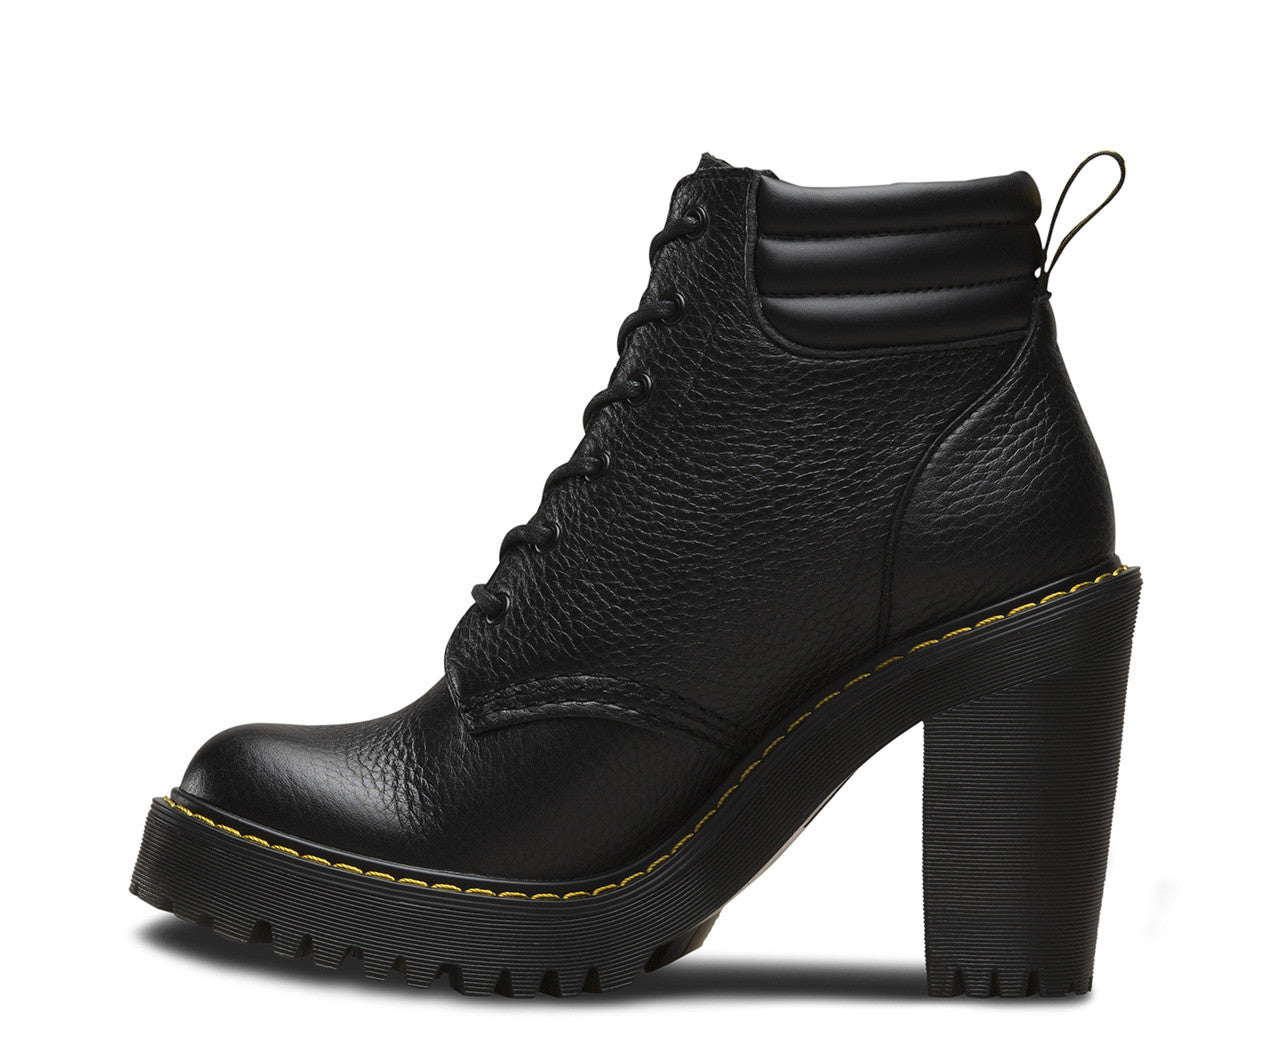 fb5d91bffd5 Dr Martens Persephone Aunt Sally Black Leather Heel Boot